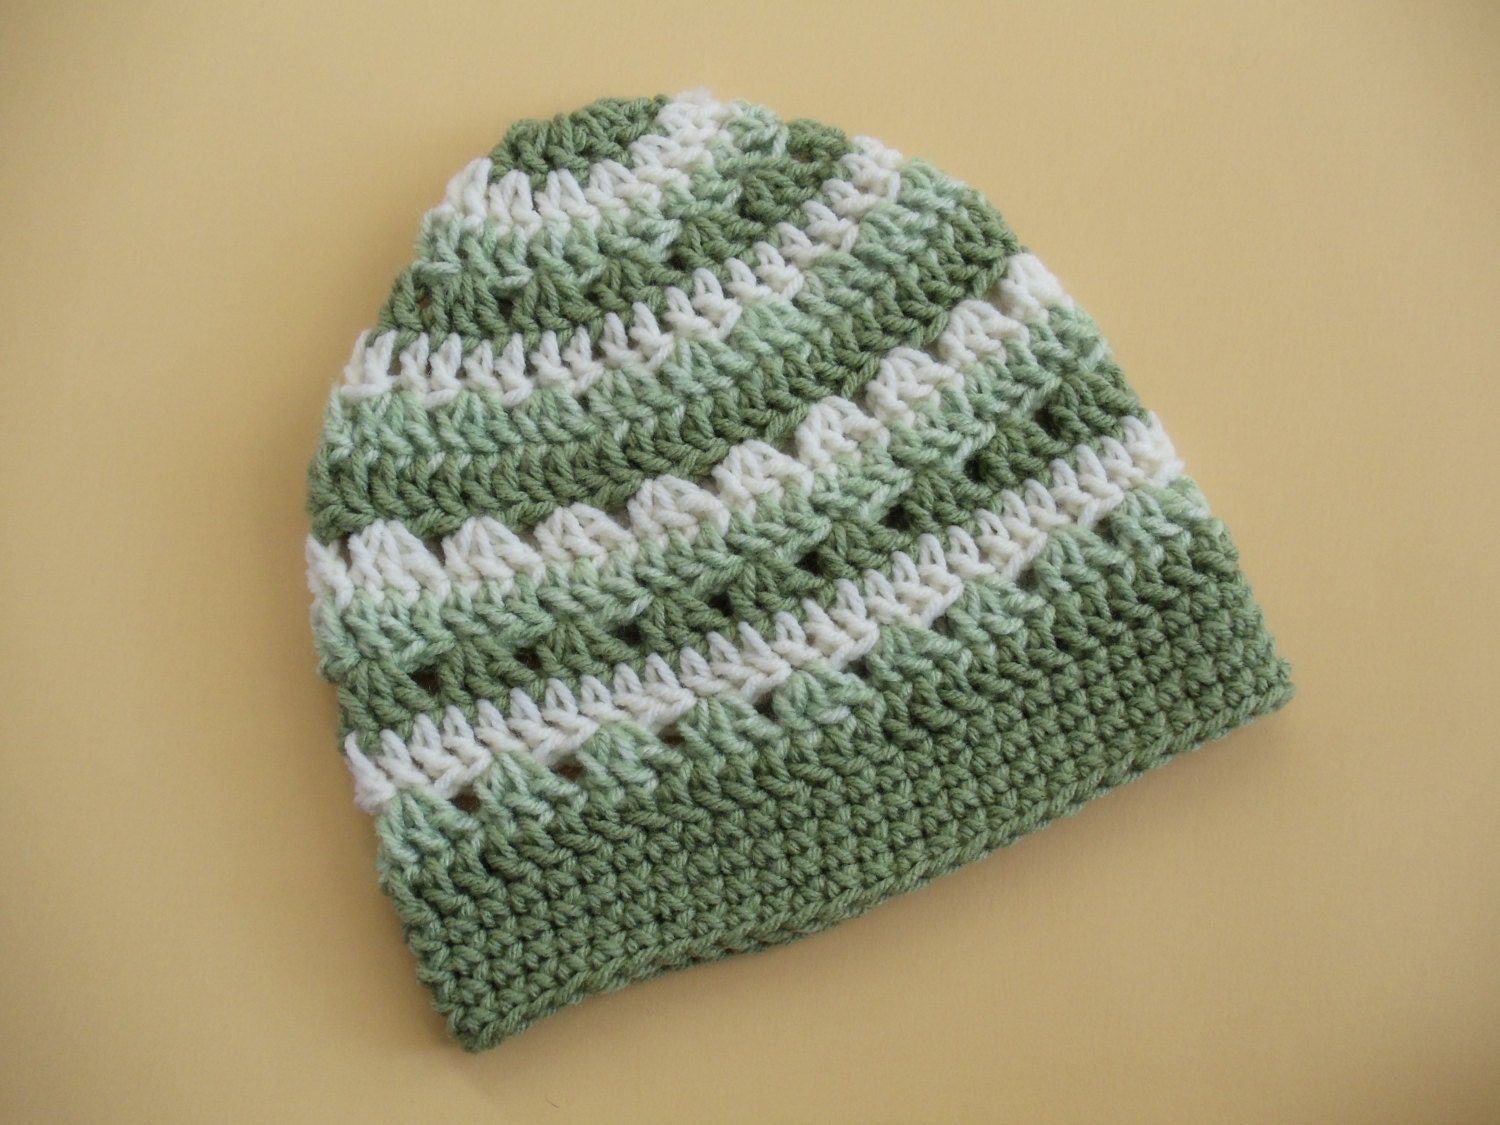 Crochet Beanie Pattern Striped : Green Striped Crochet Hat Green and White Crochet Beanie